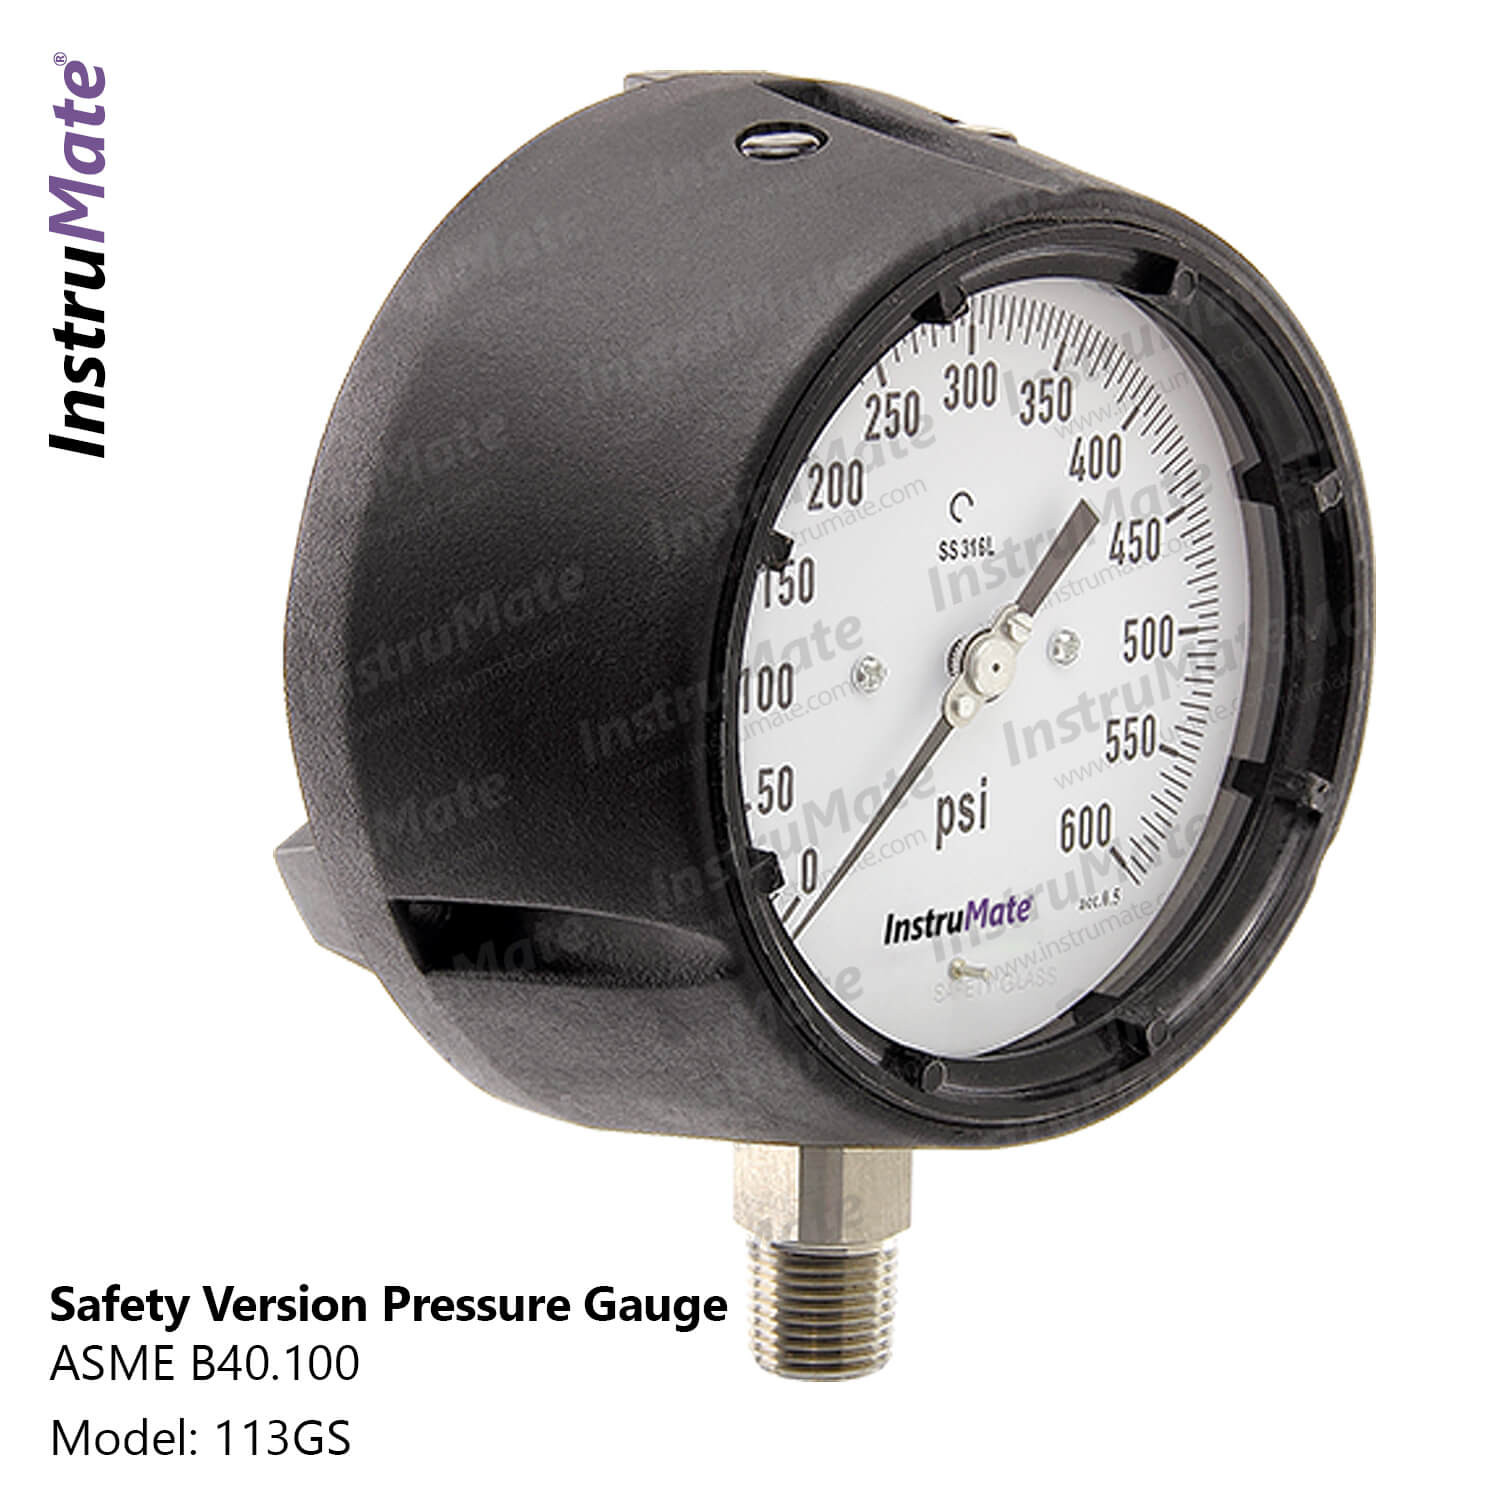 Safety version pressure gauge - 113GS - instrumate